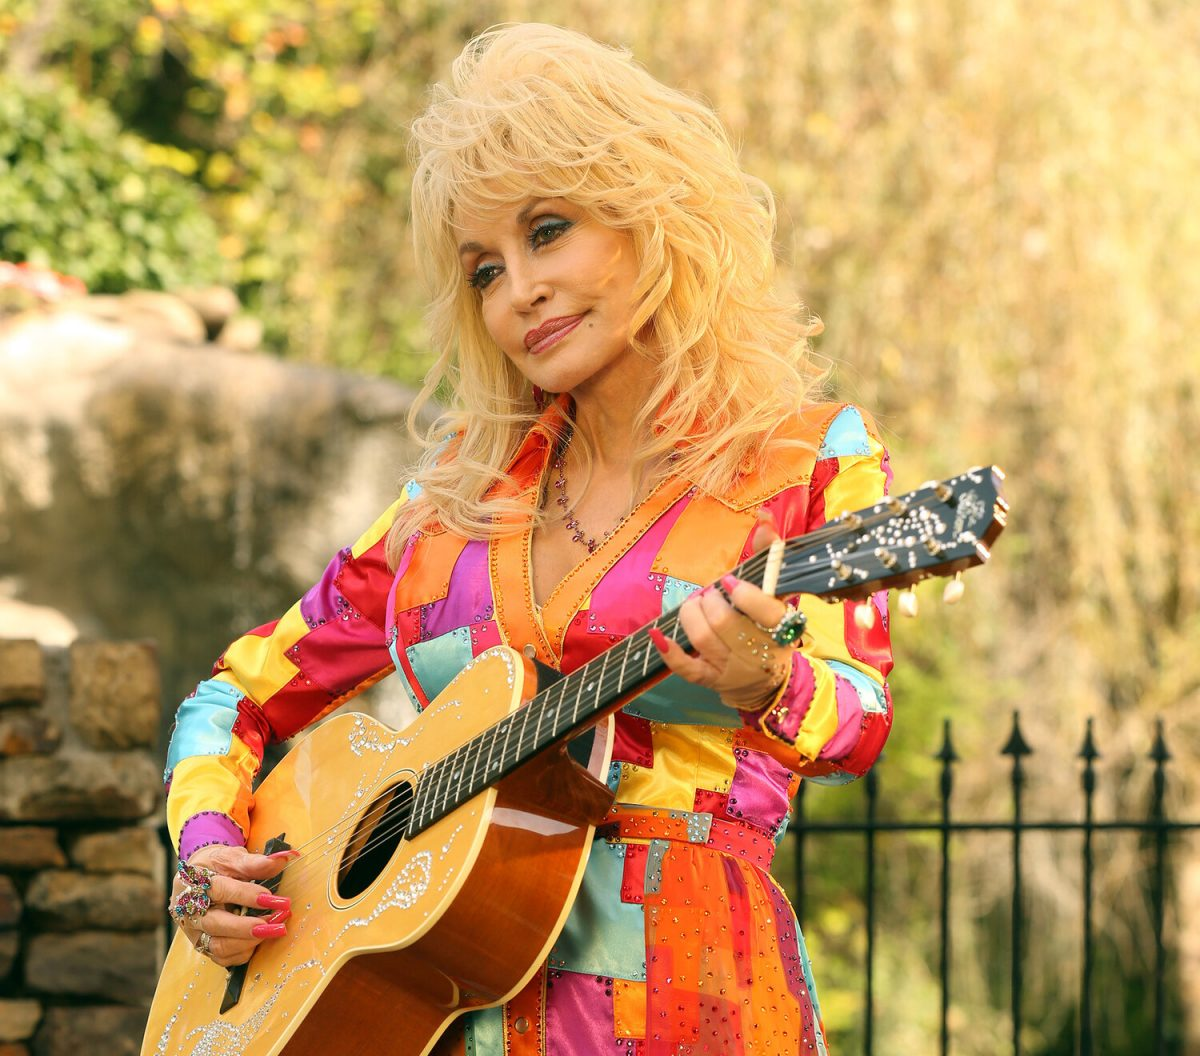 Dolly Parton plays the guitar in a coat-of-many-colors-inspired dress.